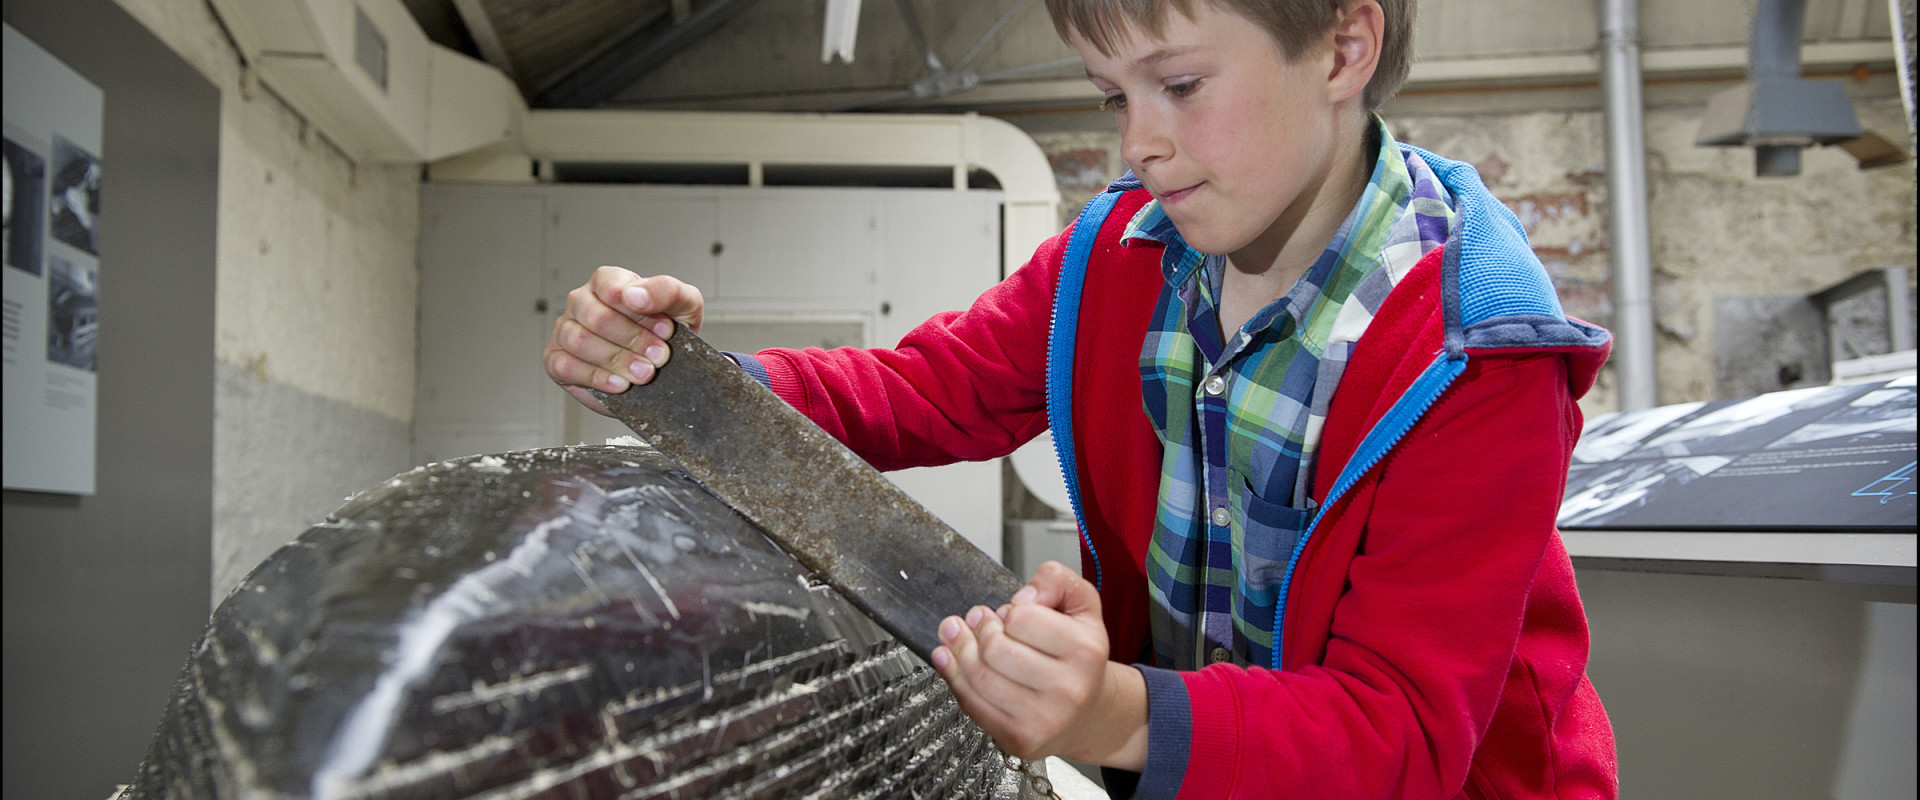 Scottish Maritime museum, Smoothing and carving a real wax hull model image